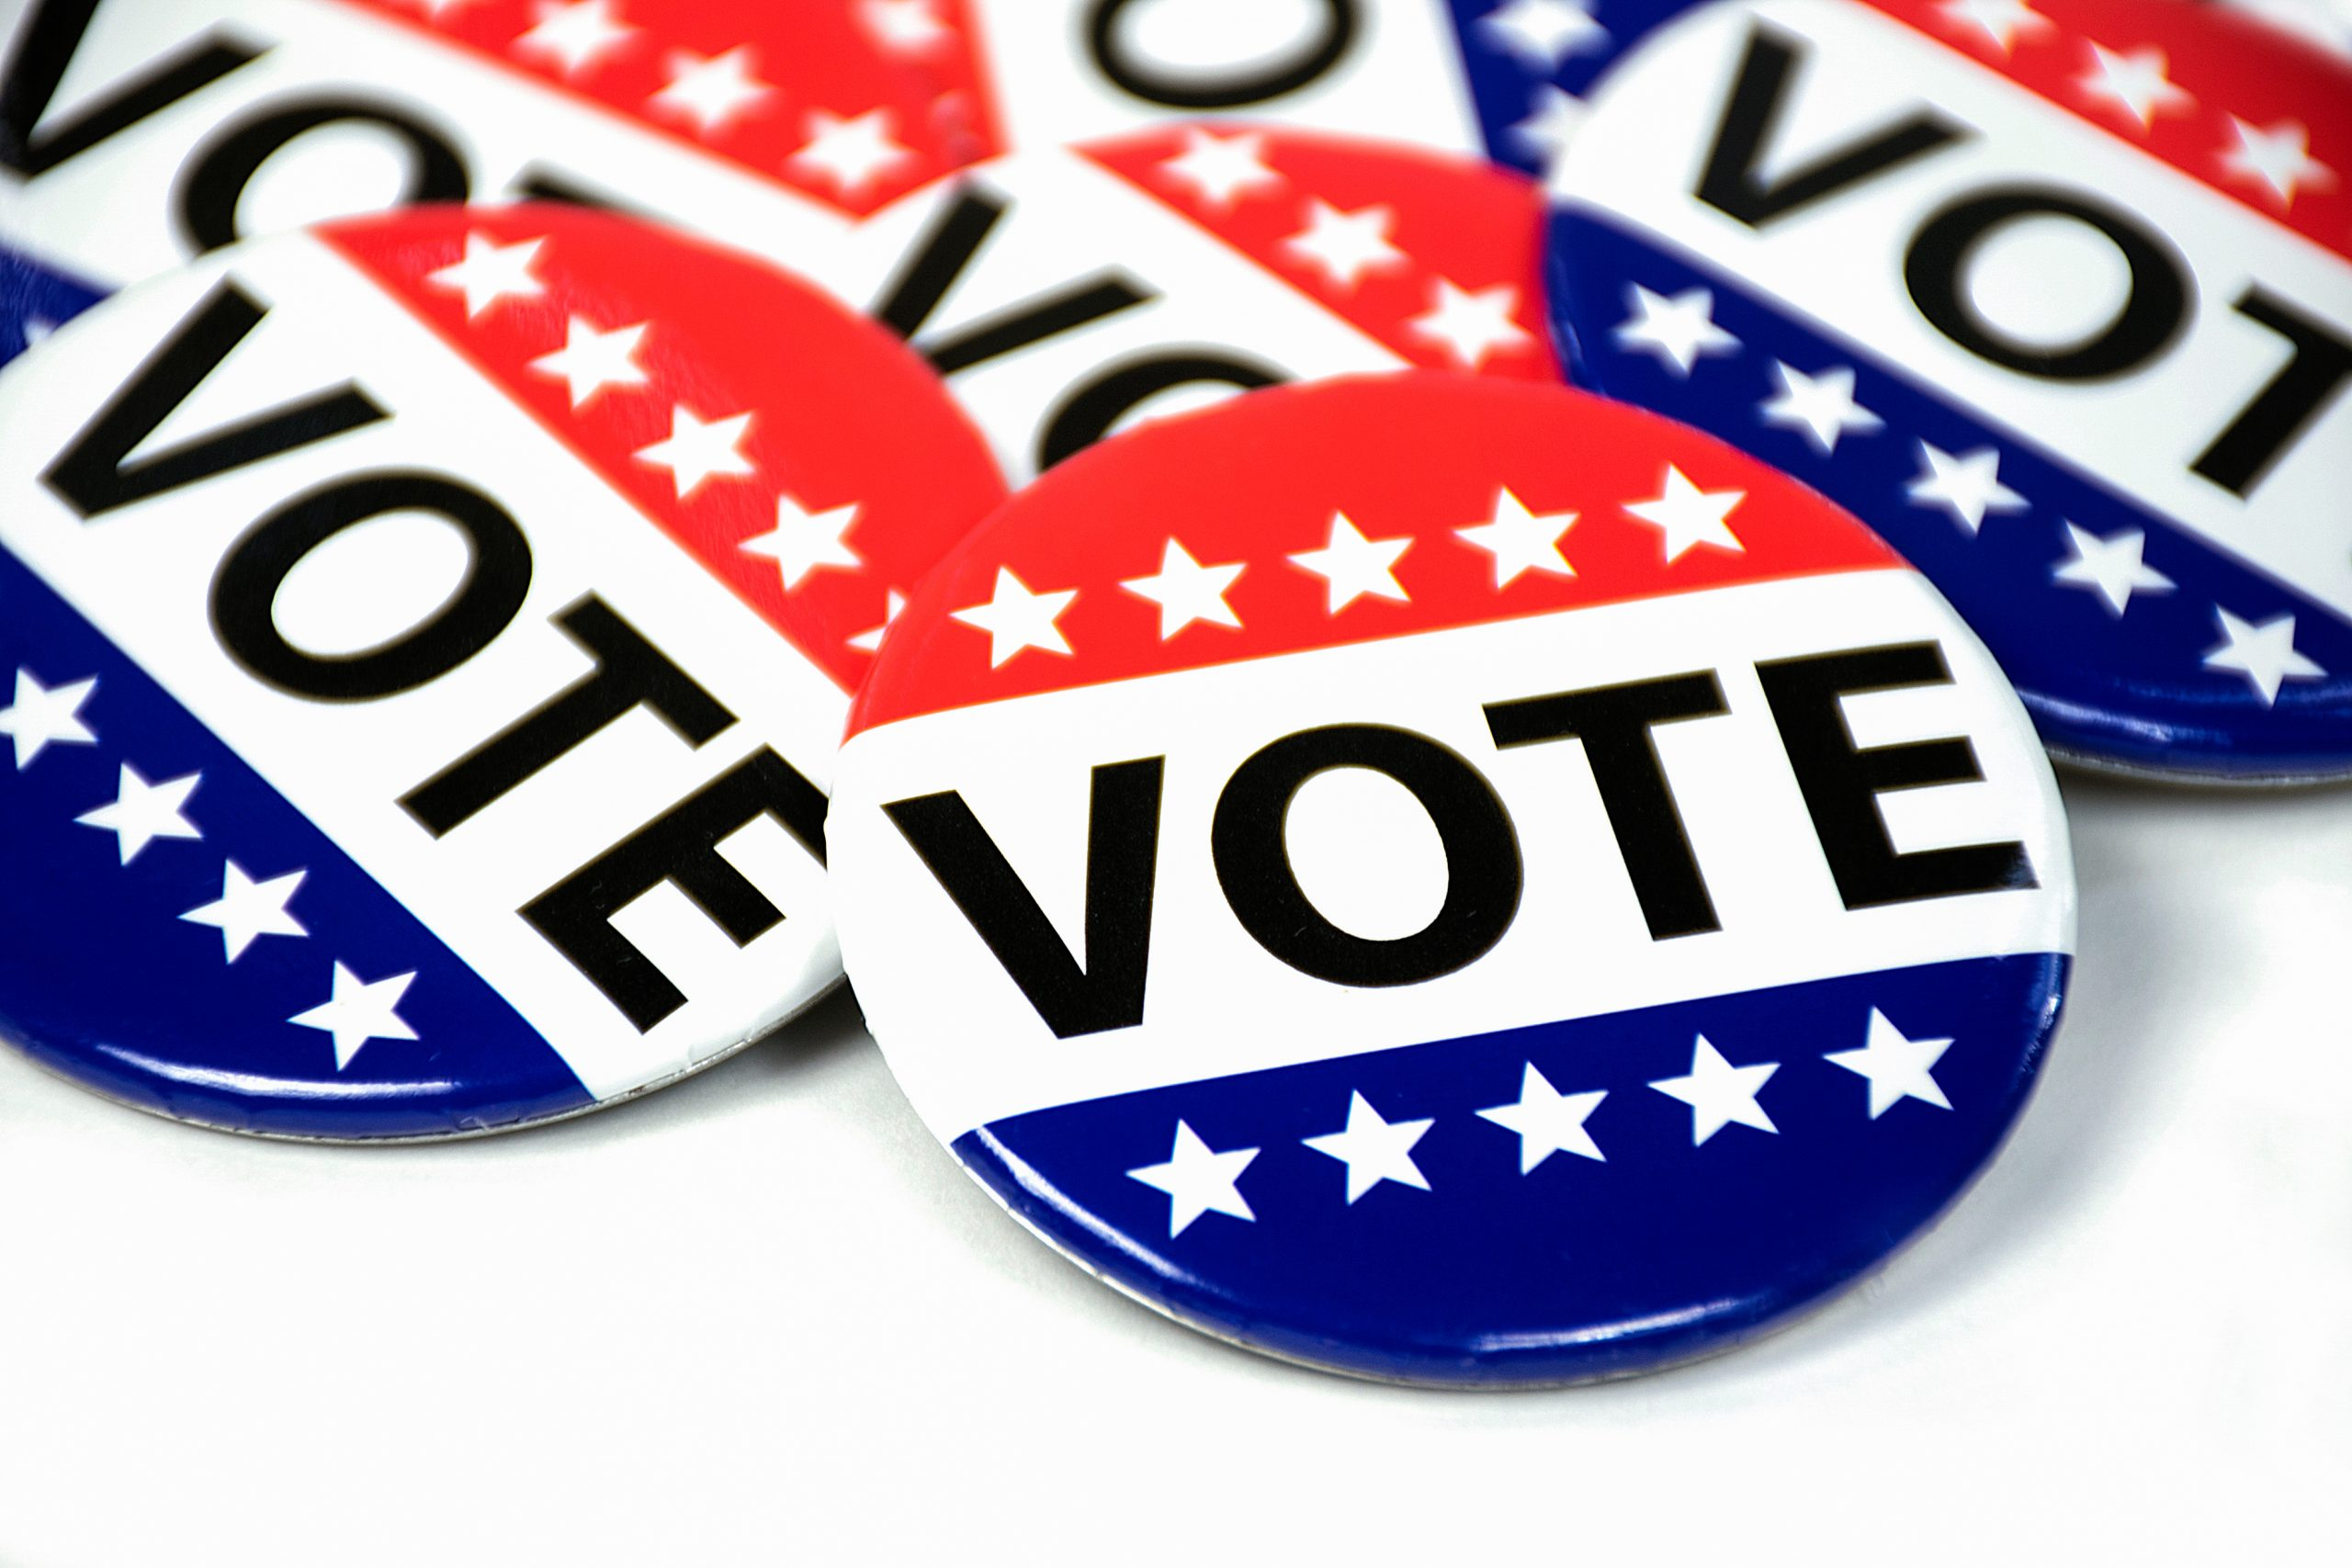 Close-up of red, white, and blue vote buttons on a white background